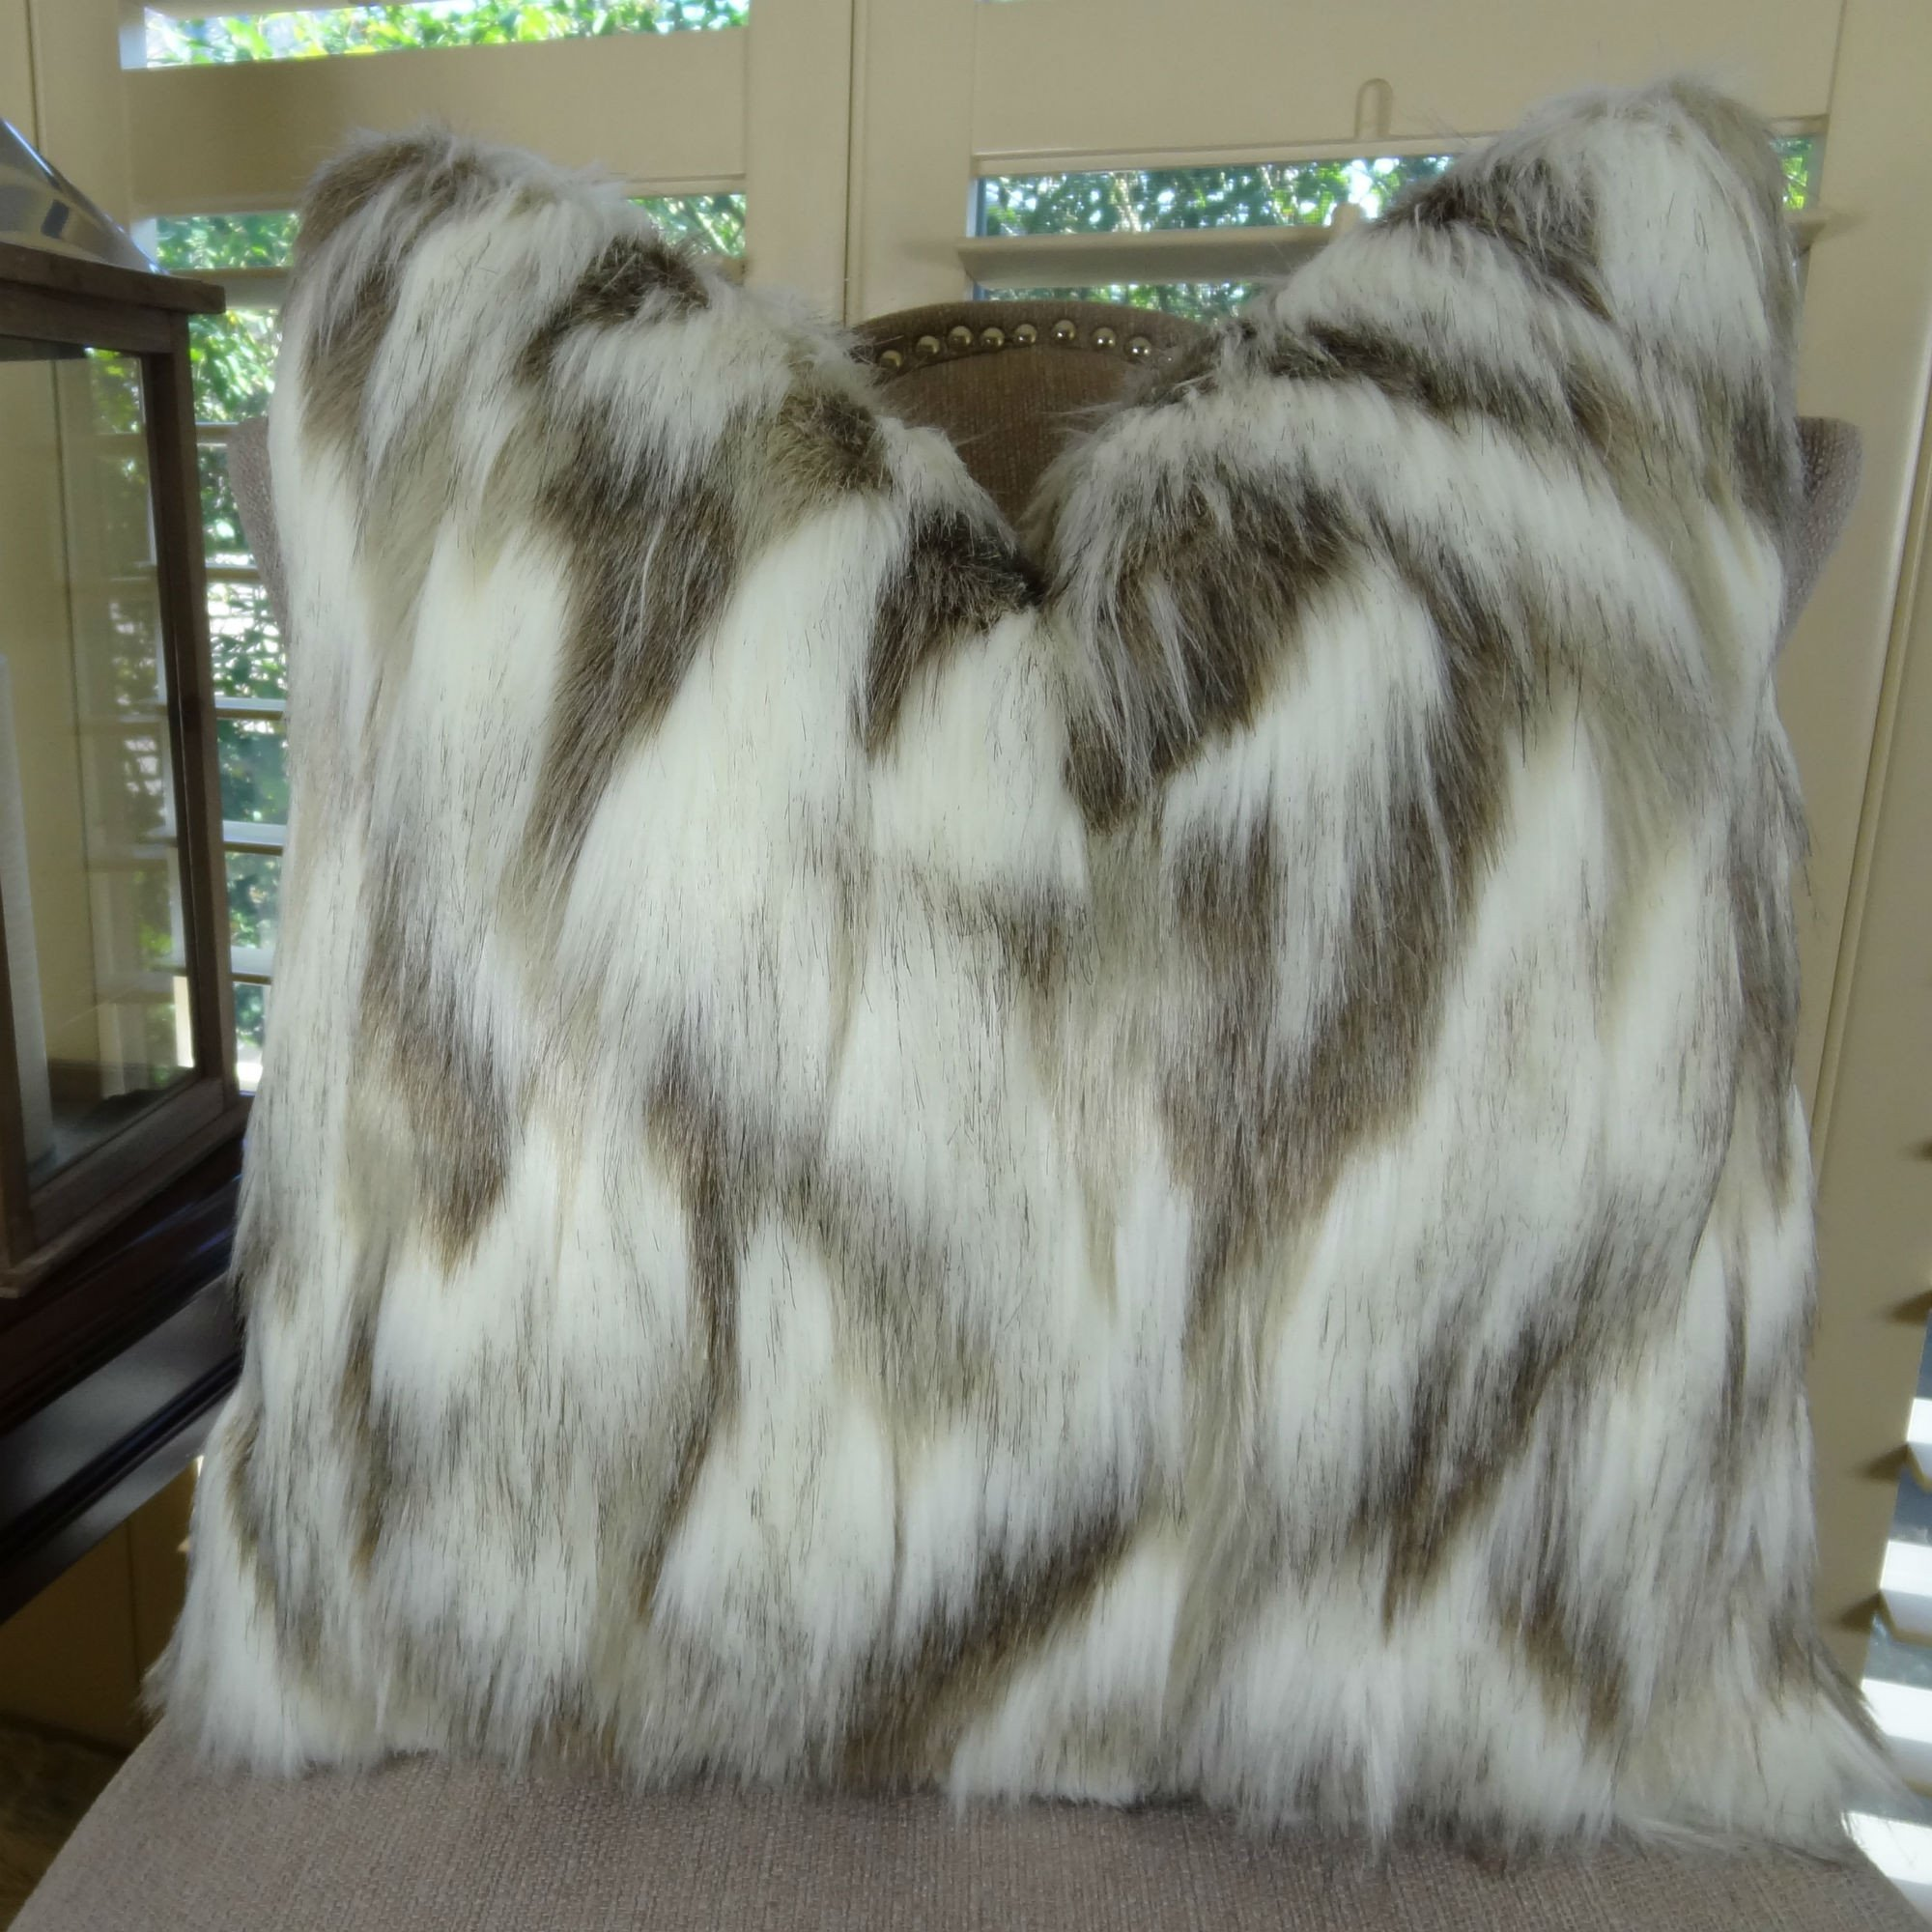 Thomas Collection luxurious throw pillows, animal themed throw pillows, Ivory Beige Tibet Fox Luxury Super Soft Faux Fur Throw Pillow, COVER ONLY, NO INSERT, Made in America, 17405